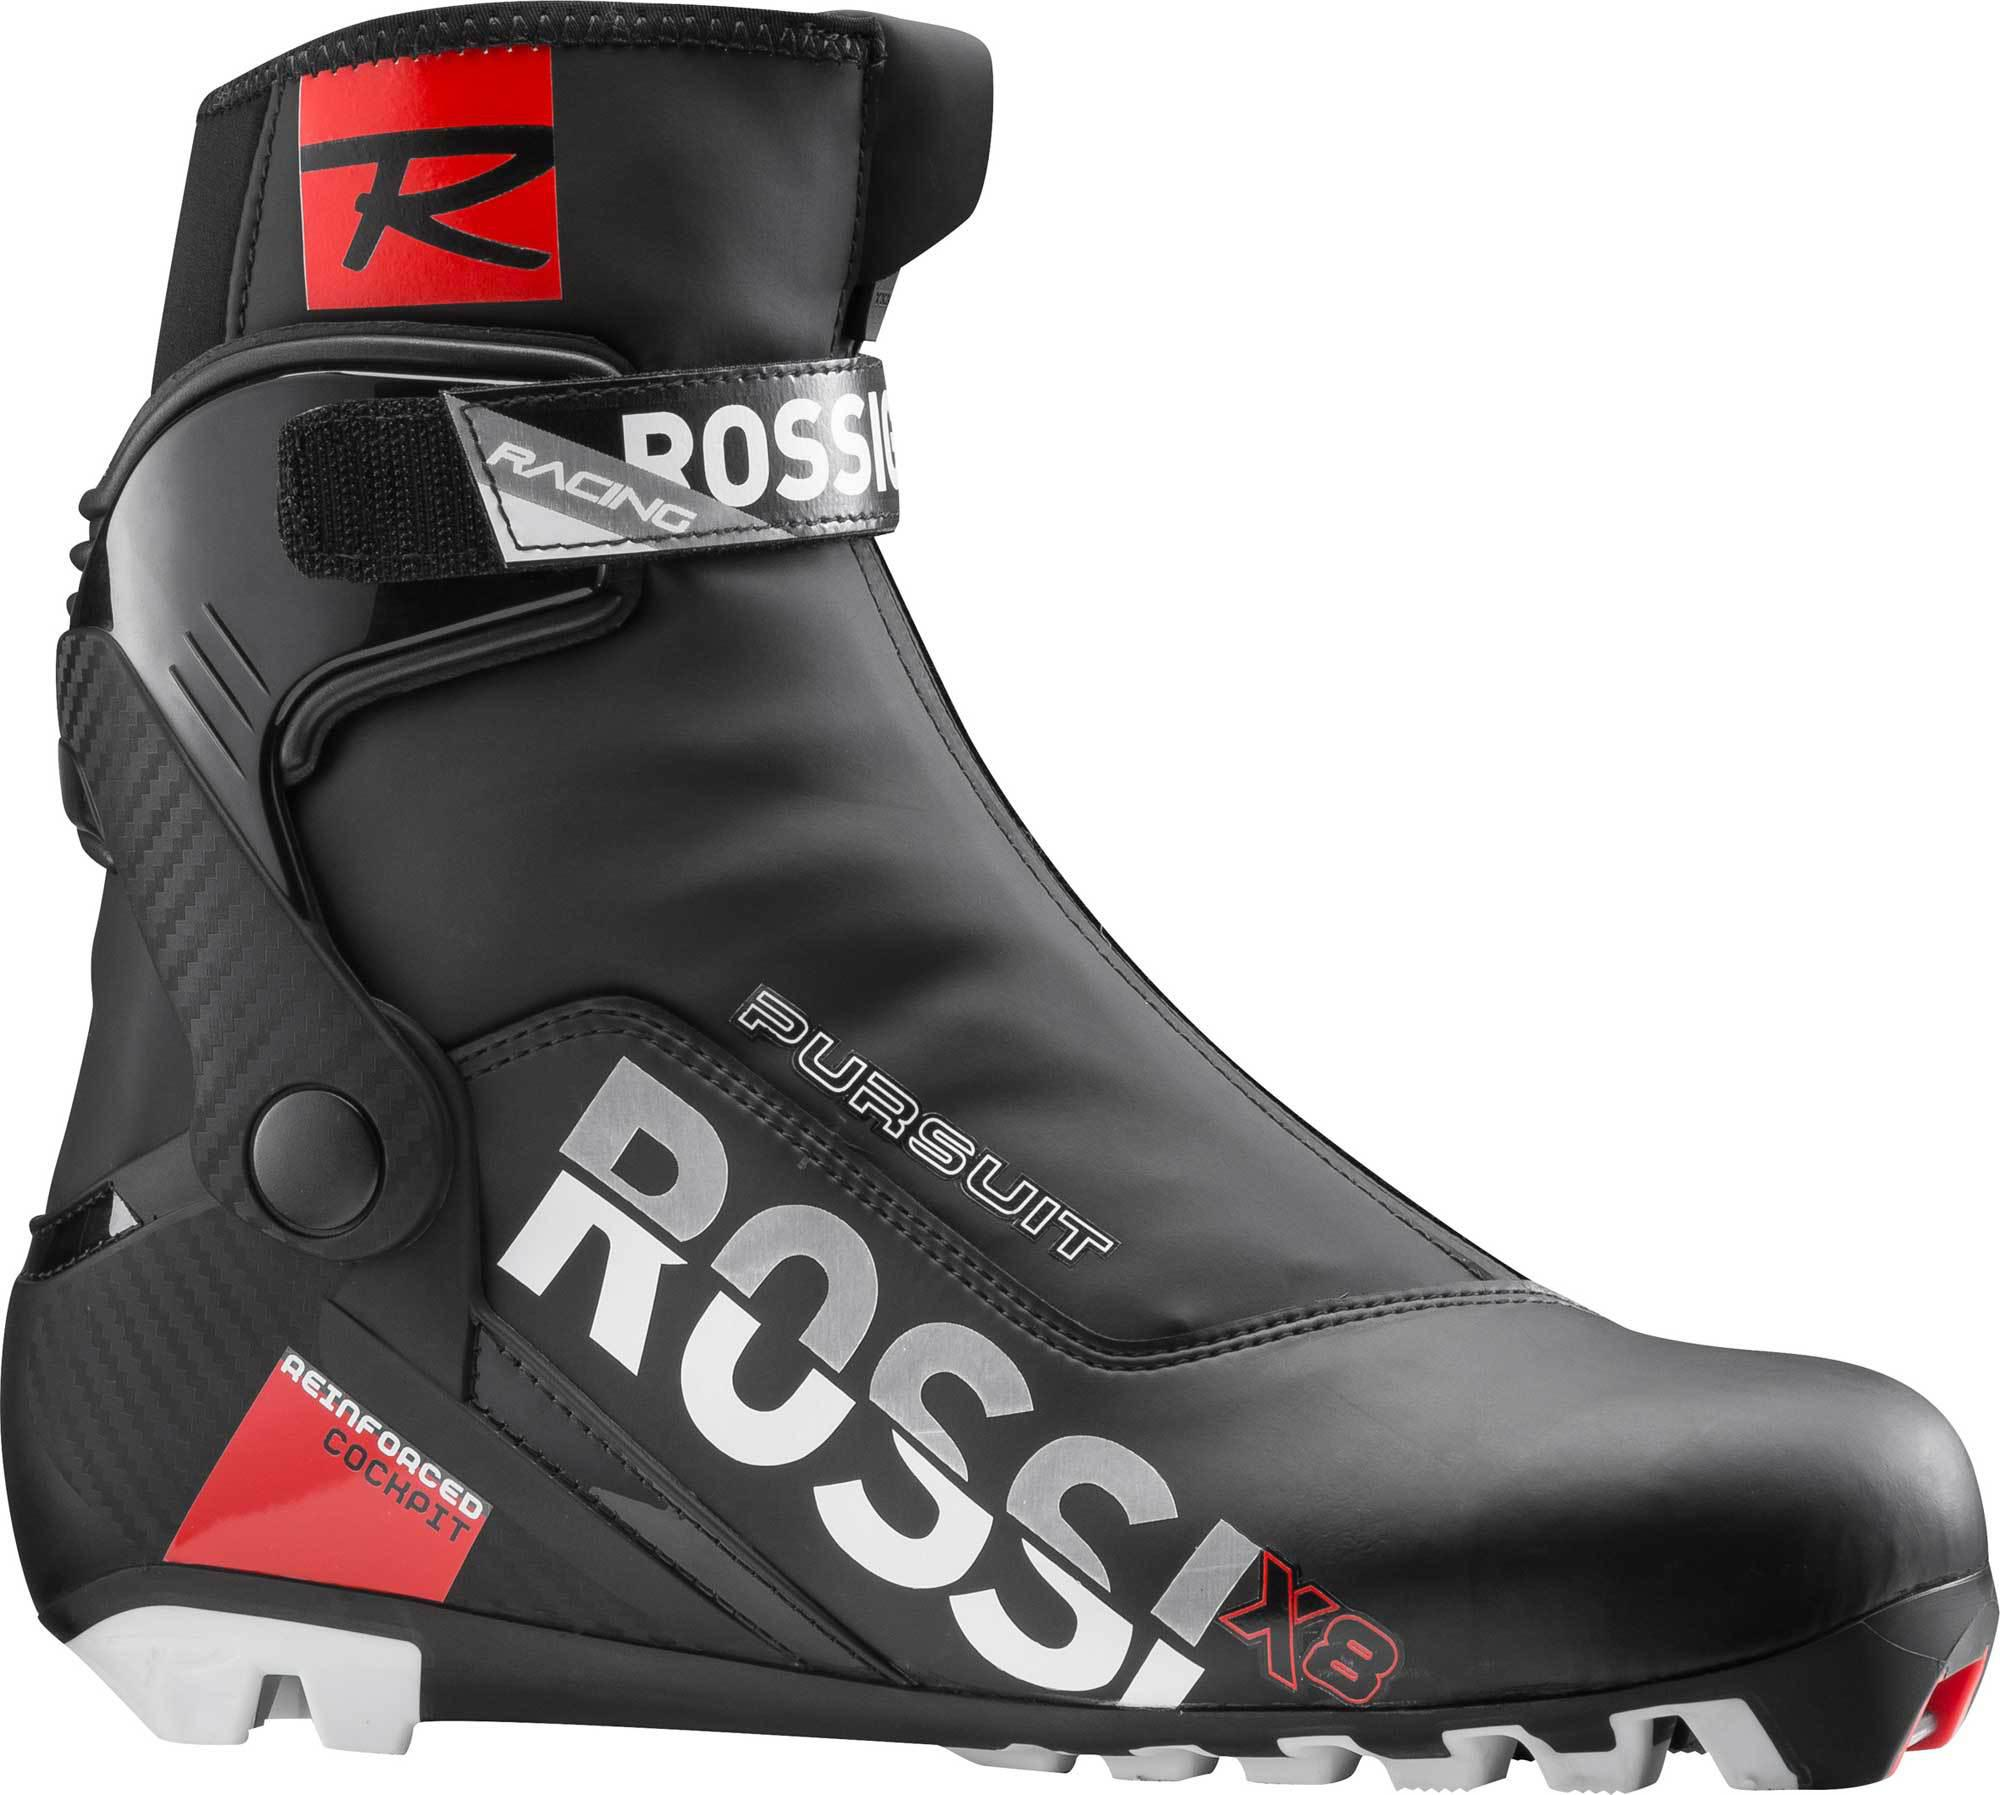 ROSSIGNOL X-8 PURSUIT 17/18